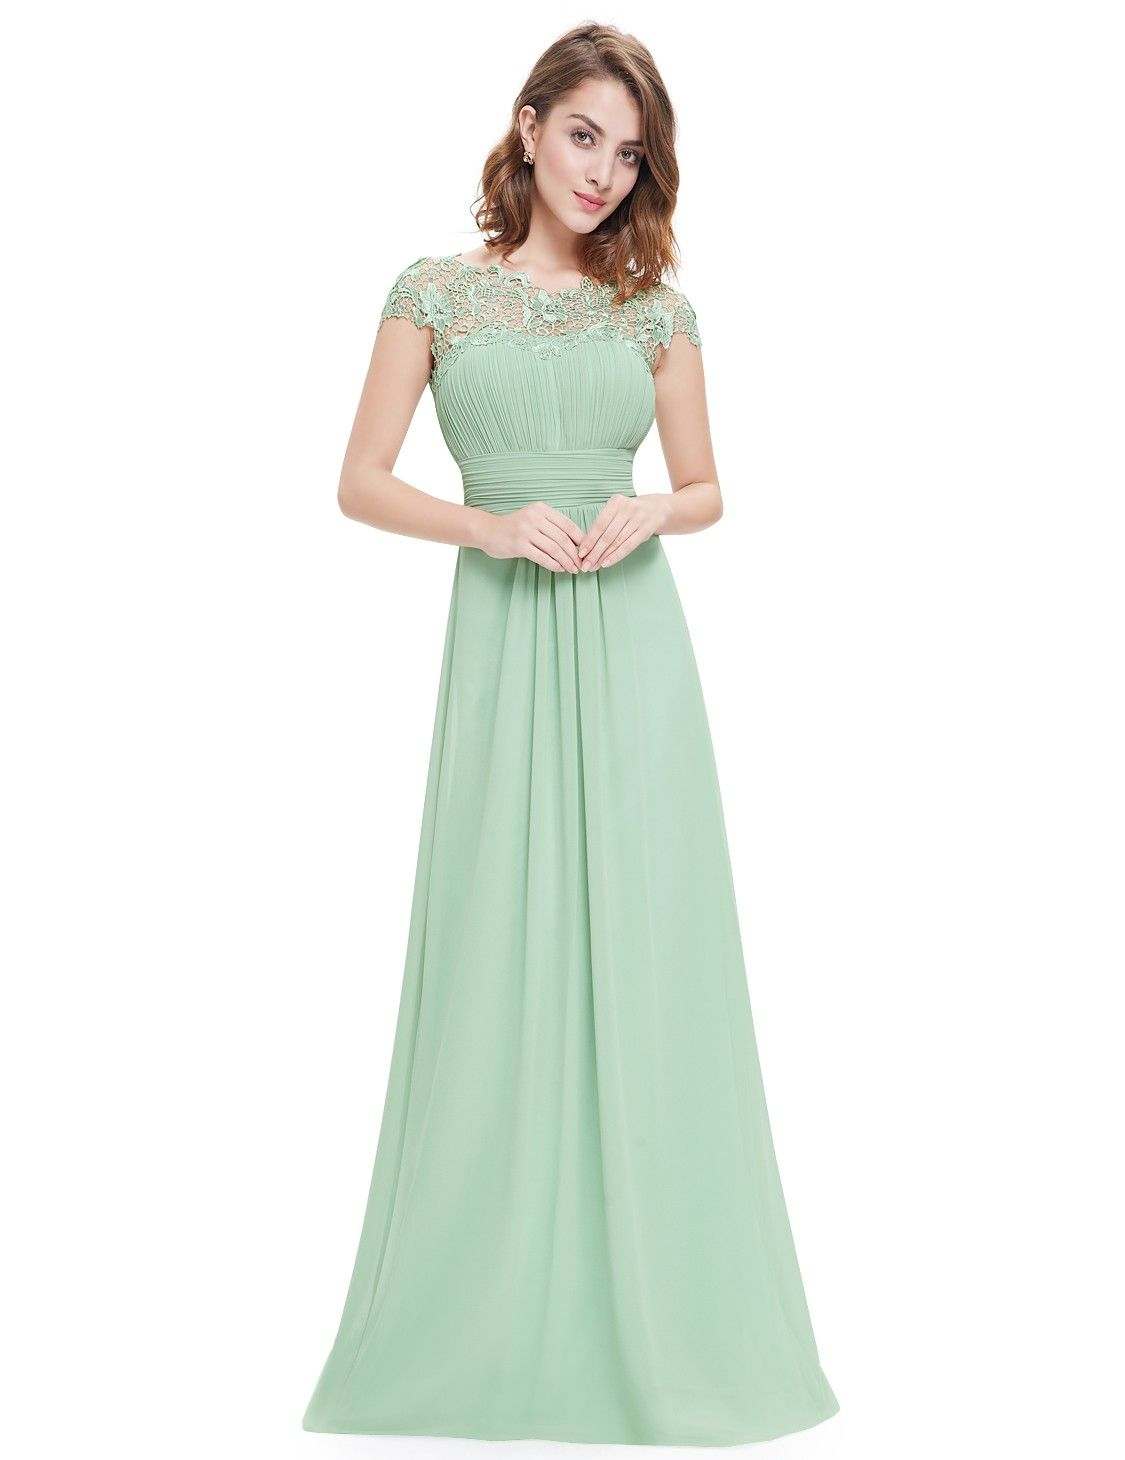 Lace cap sleeve evening gown gowns